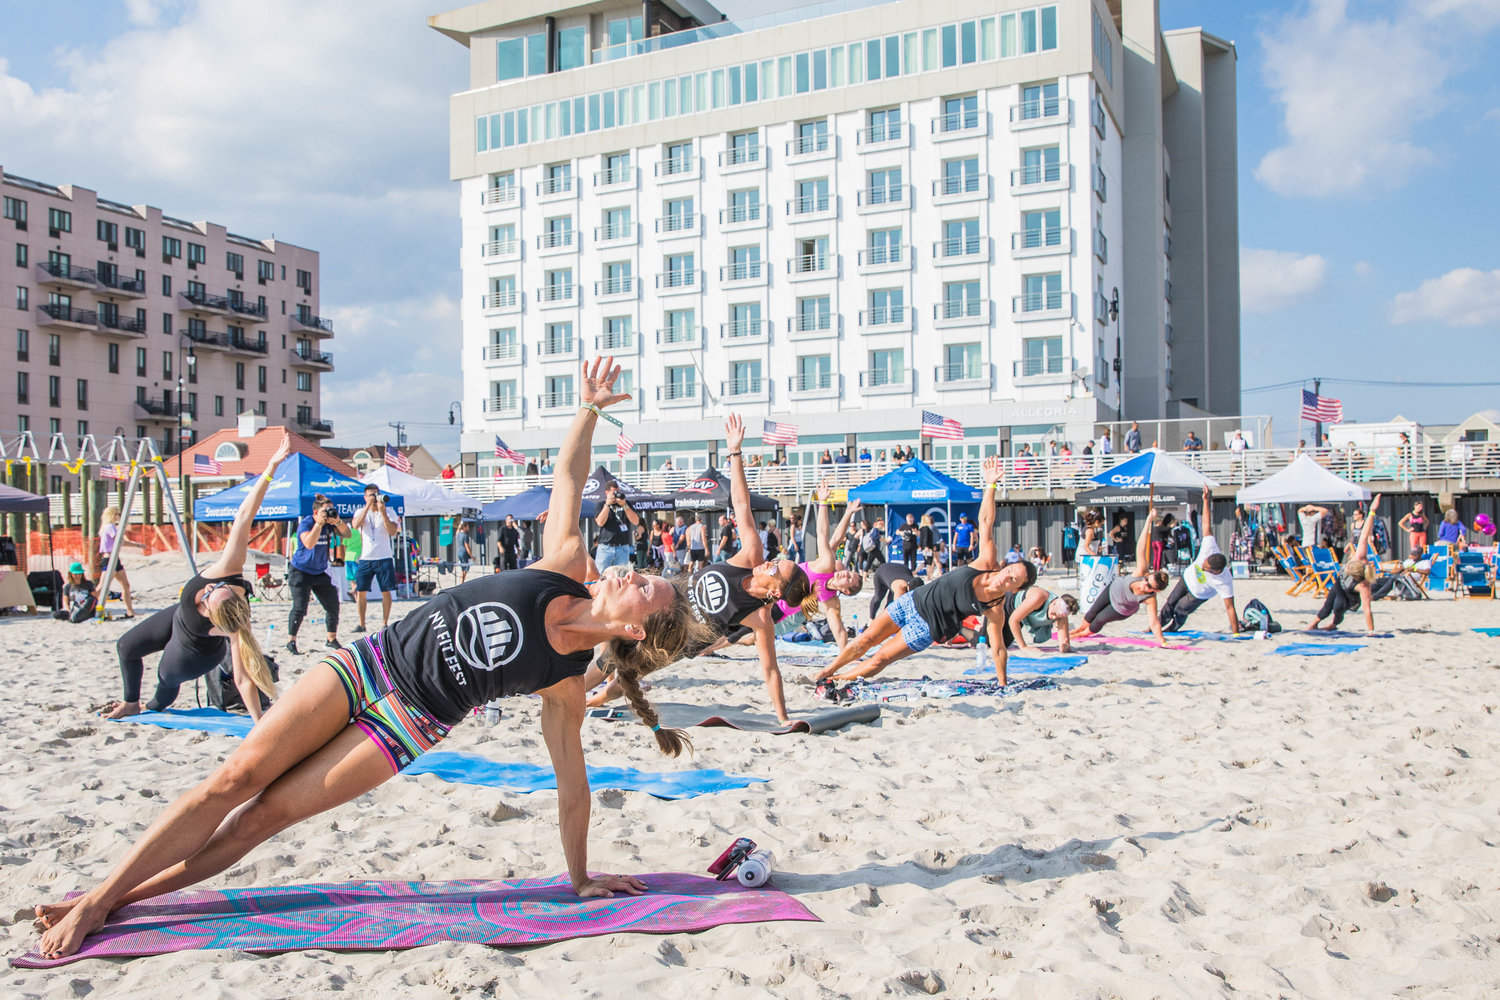 NY Fit Fest offers a variety of activities, including yoga.